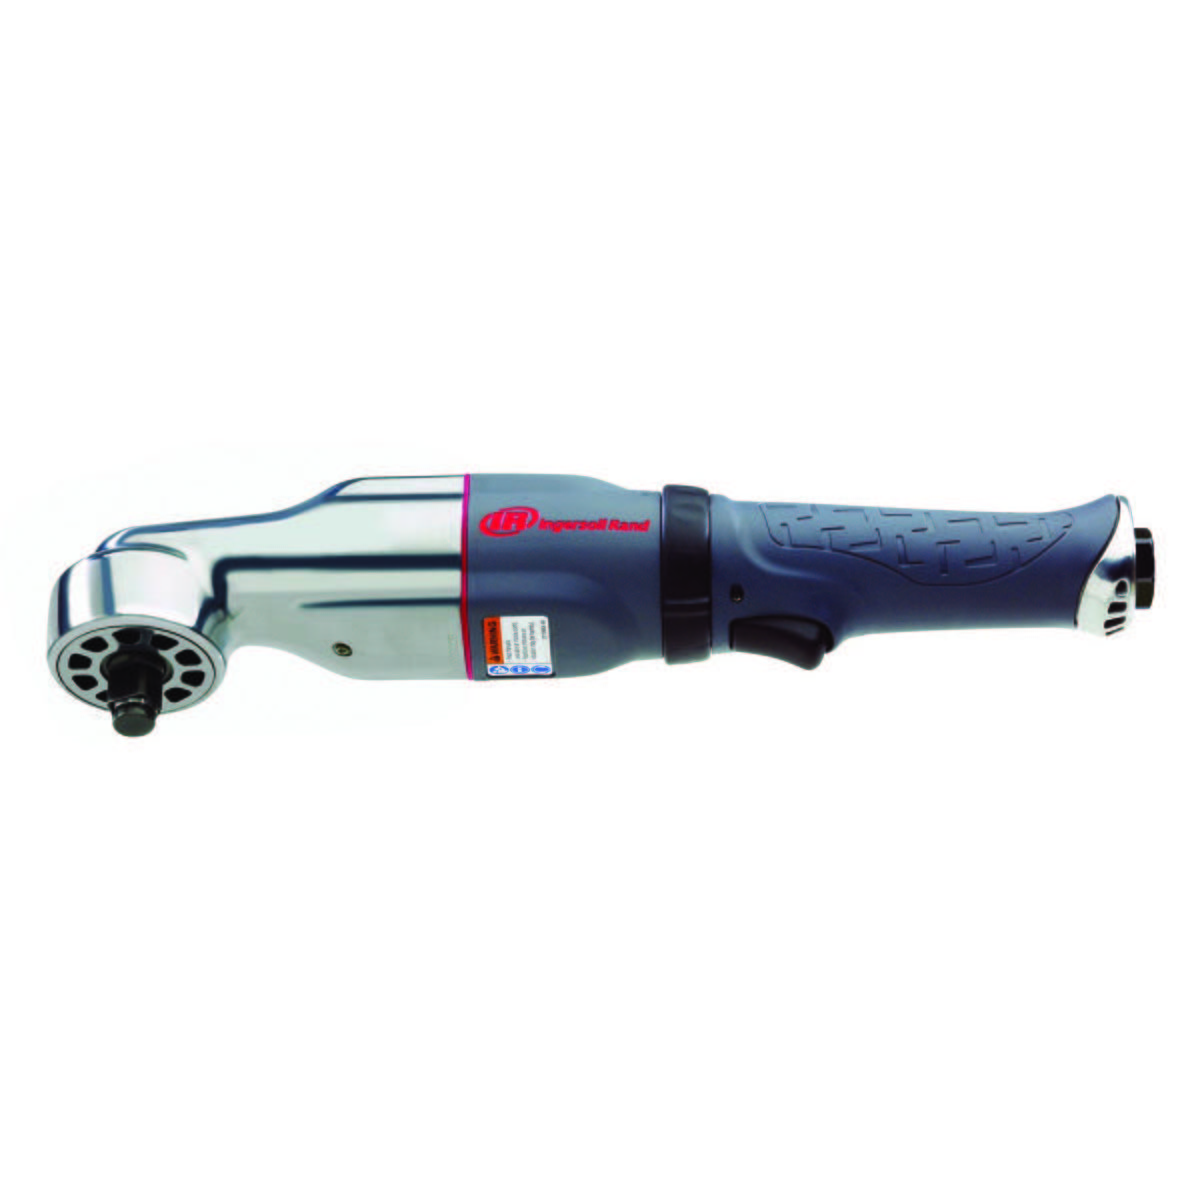 1/2-In Low Profile Air Ratchet - 180 Ft-Lbs Max Torque